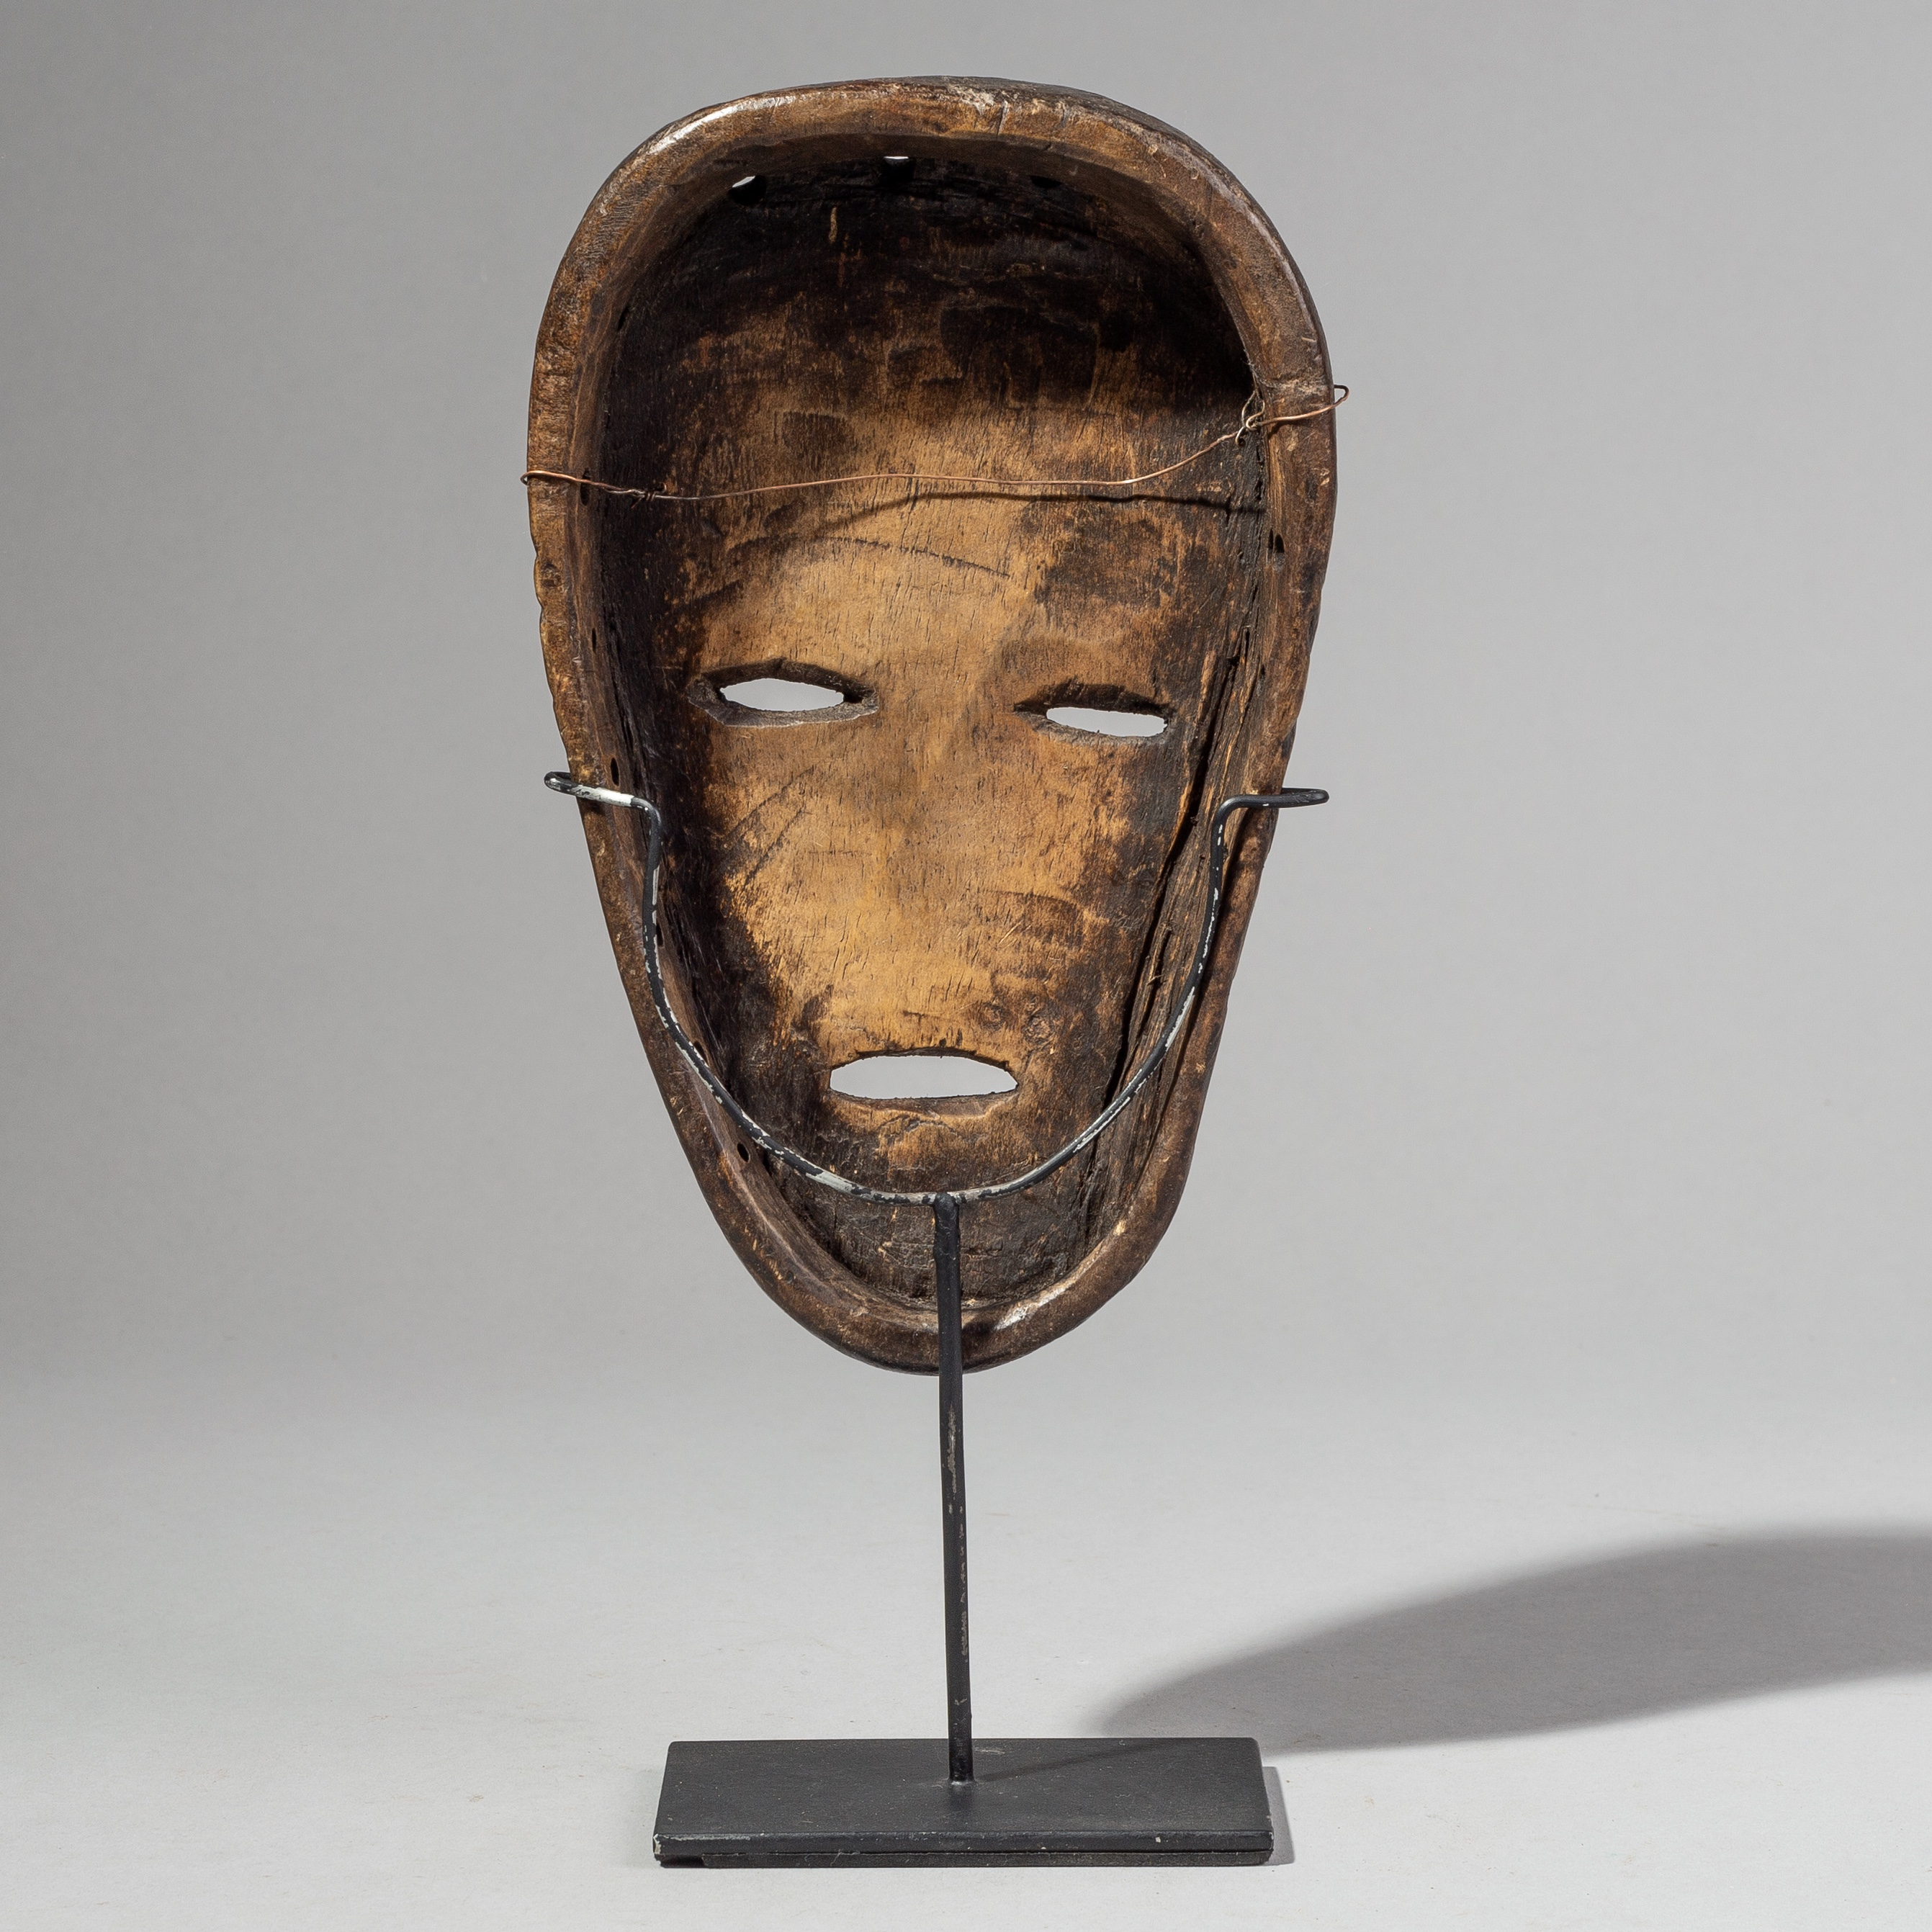 SD A SERENE LOVALE MASK FROM ZAMBIA( No 1655 )